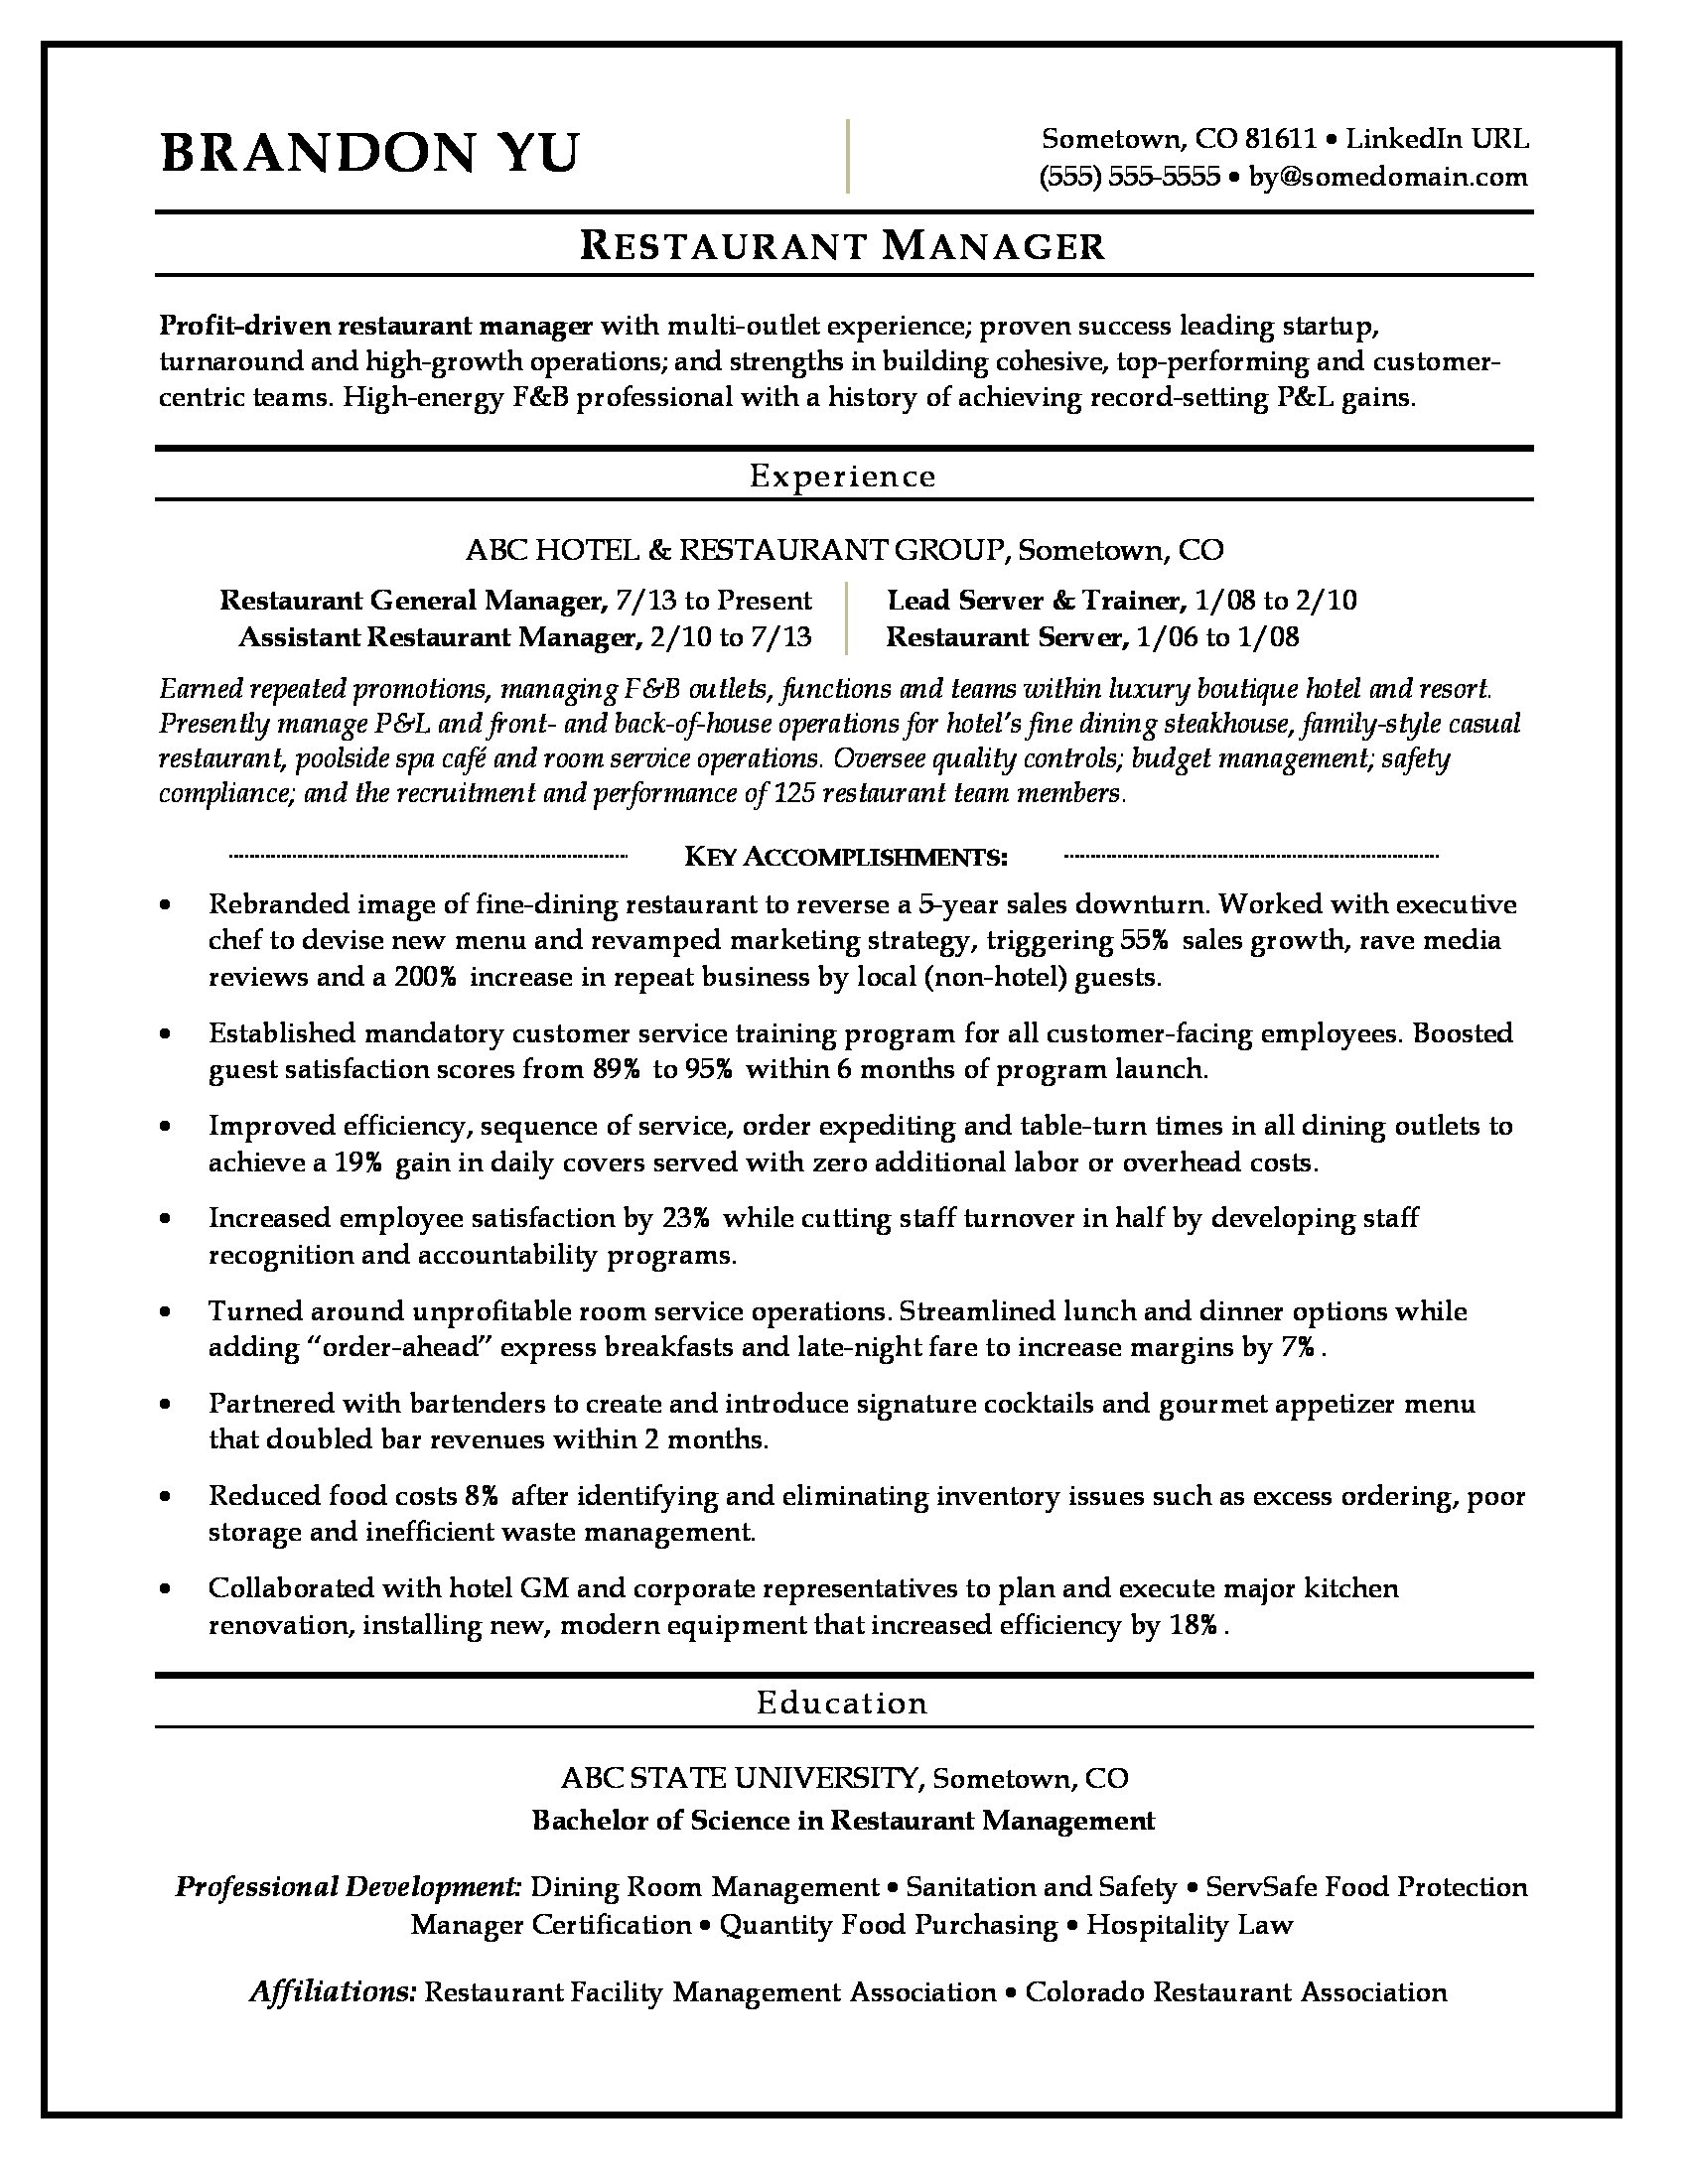 Sample Resume For A Restaurant Manager  Hospitality Resume